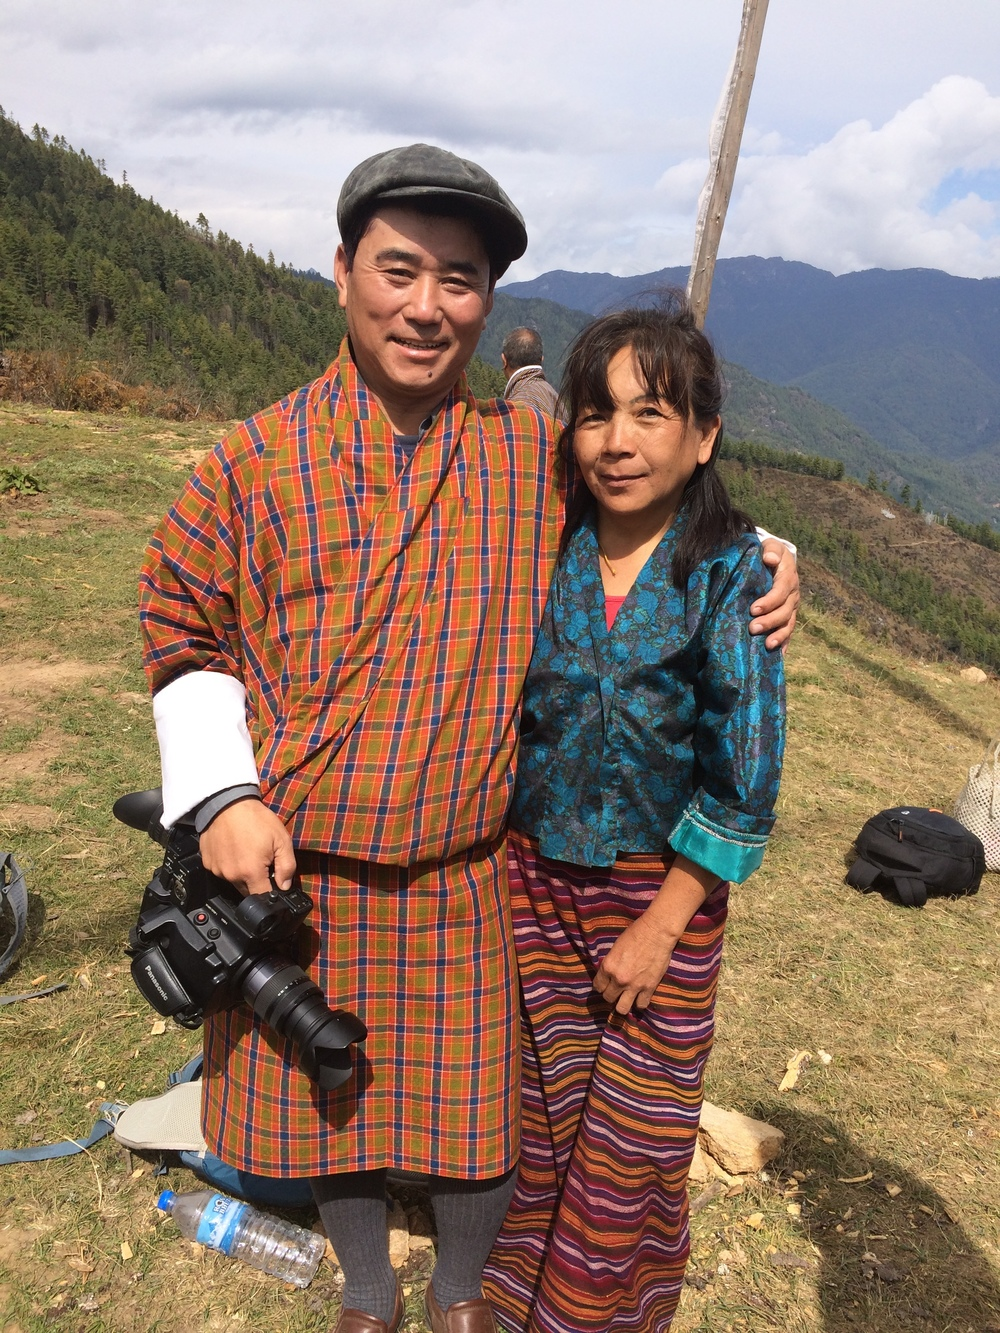 Pema, his wife and camera